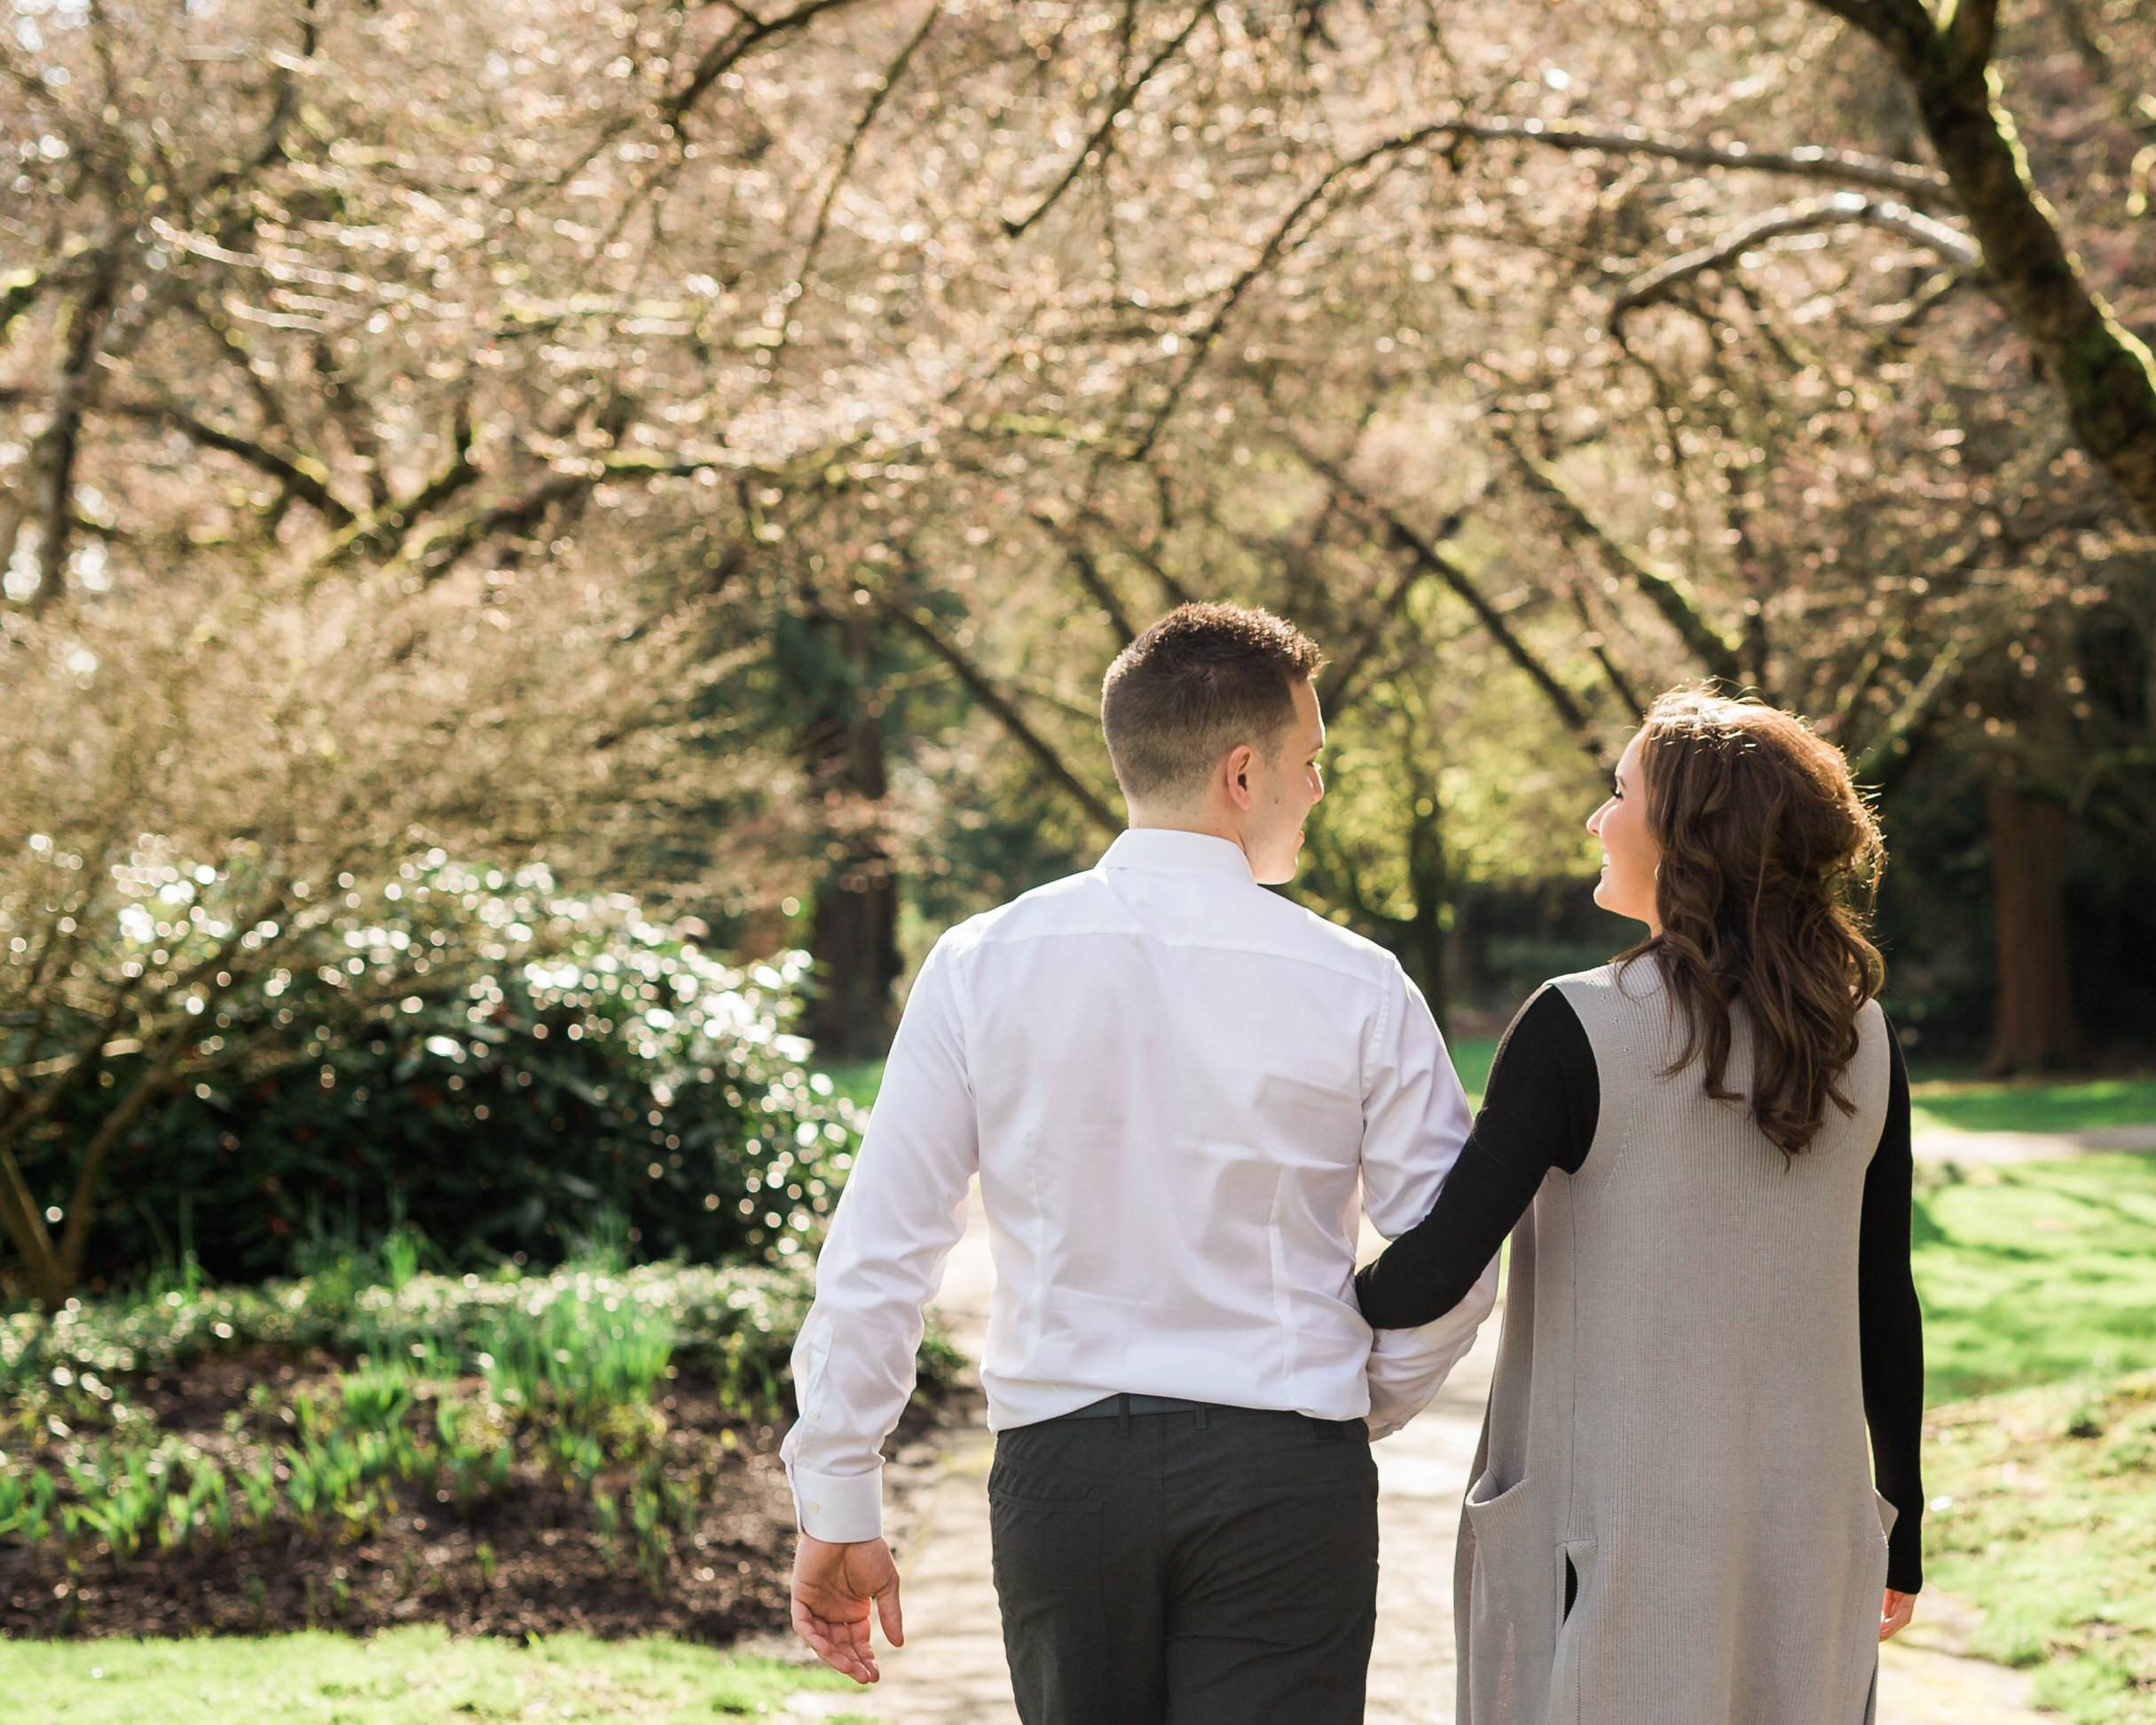 Stanley Park Engagement Photos, Vancouver Engagement Photos, Vancouver Wedding Photographer, Jennifer Picard Photography